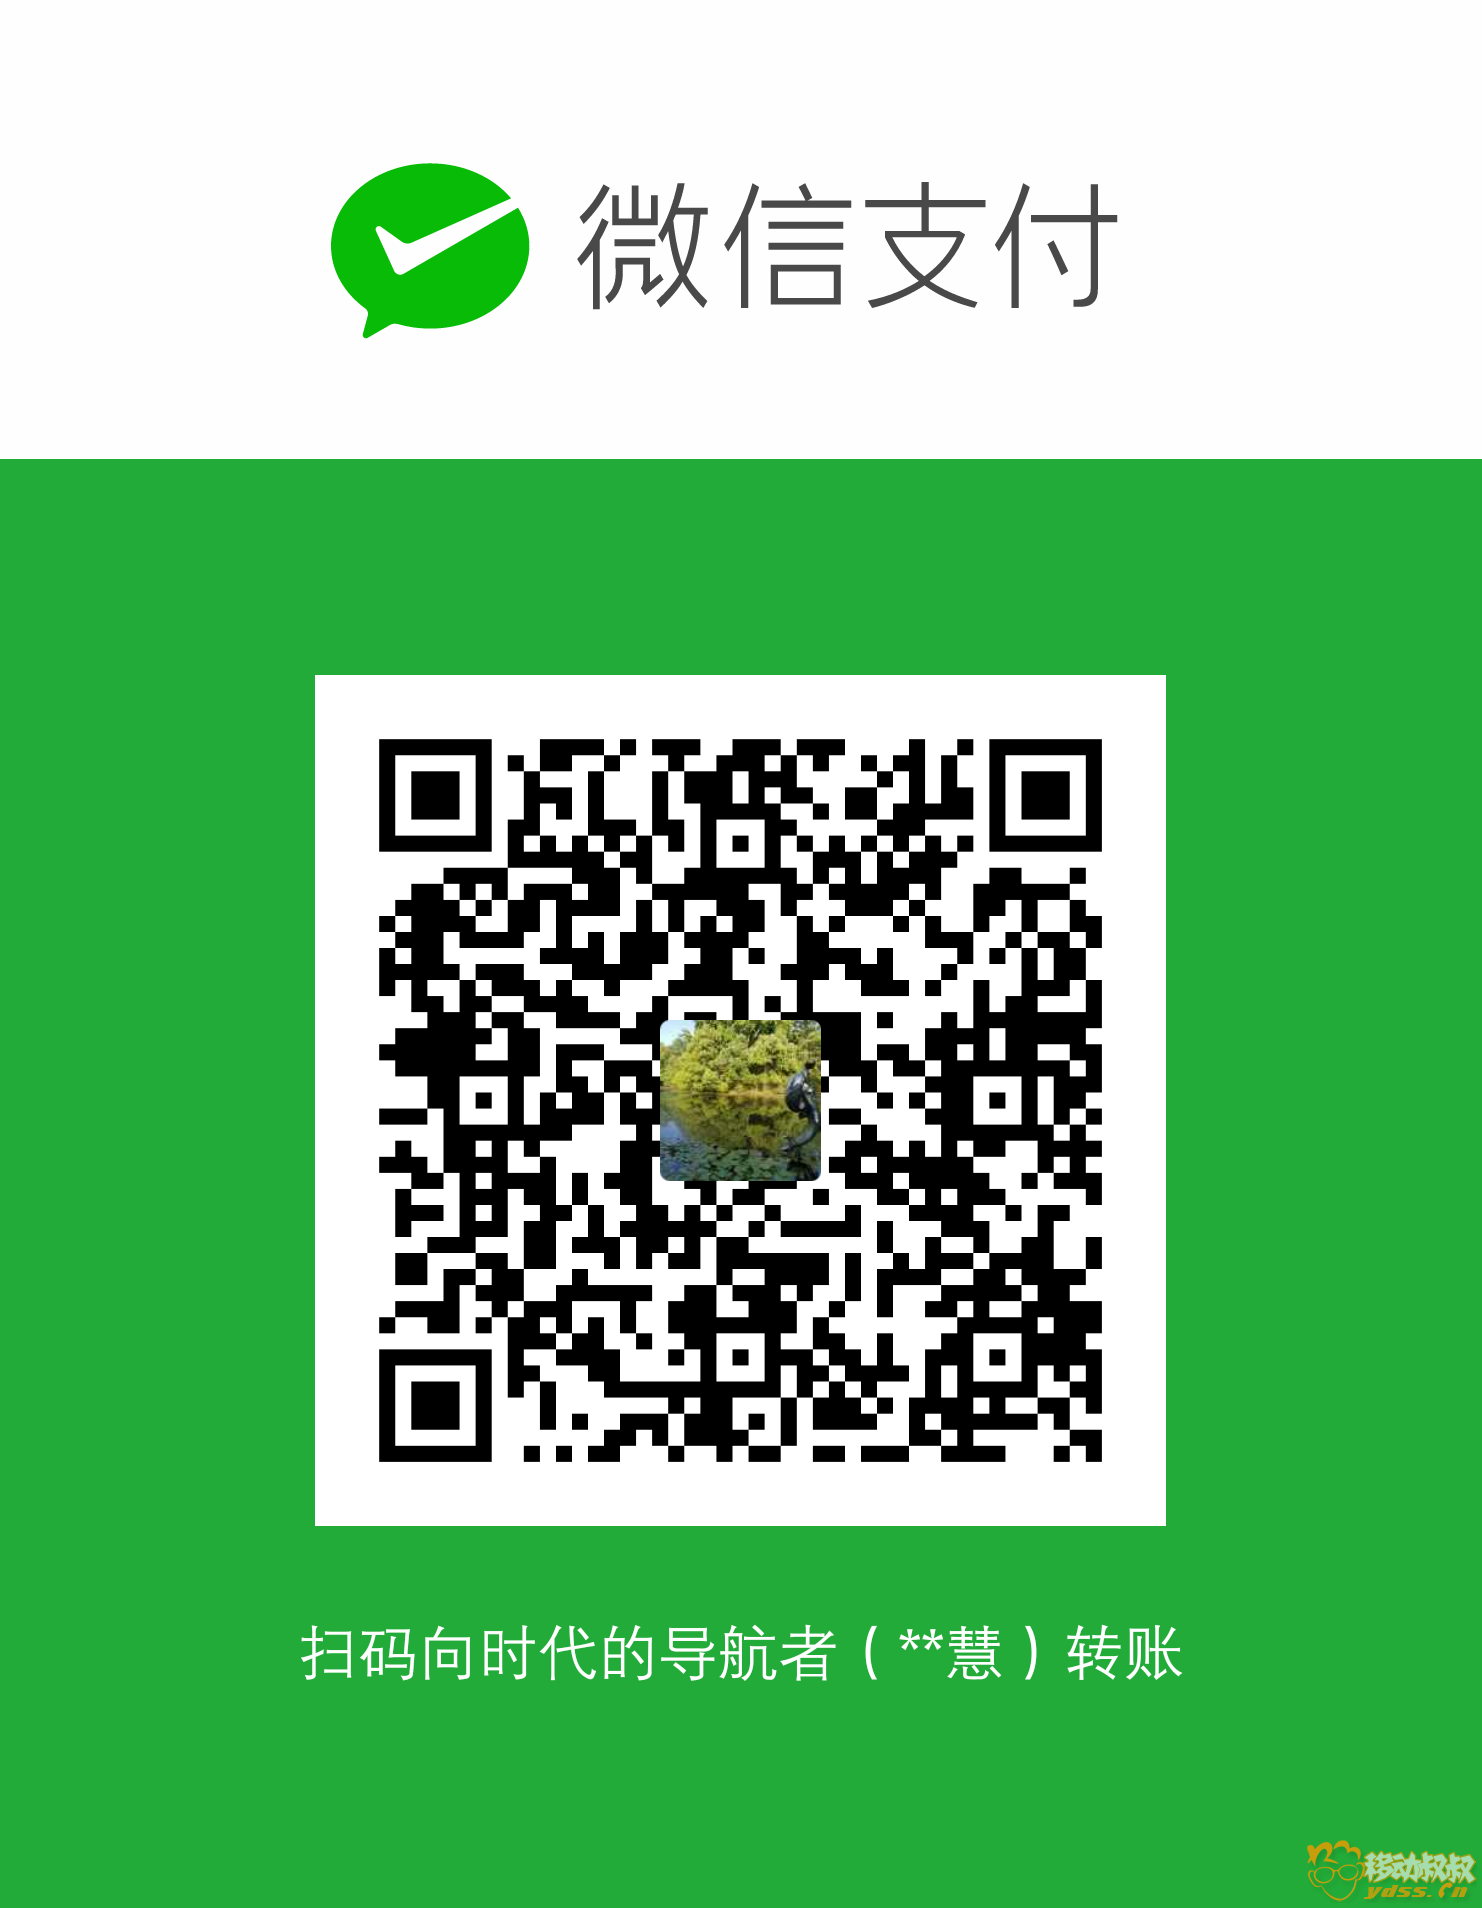 mm_facetoface_collect_qrcode_1491350673086.png